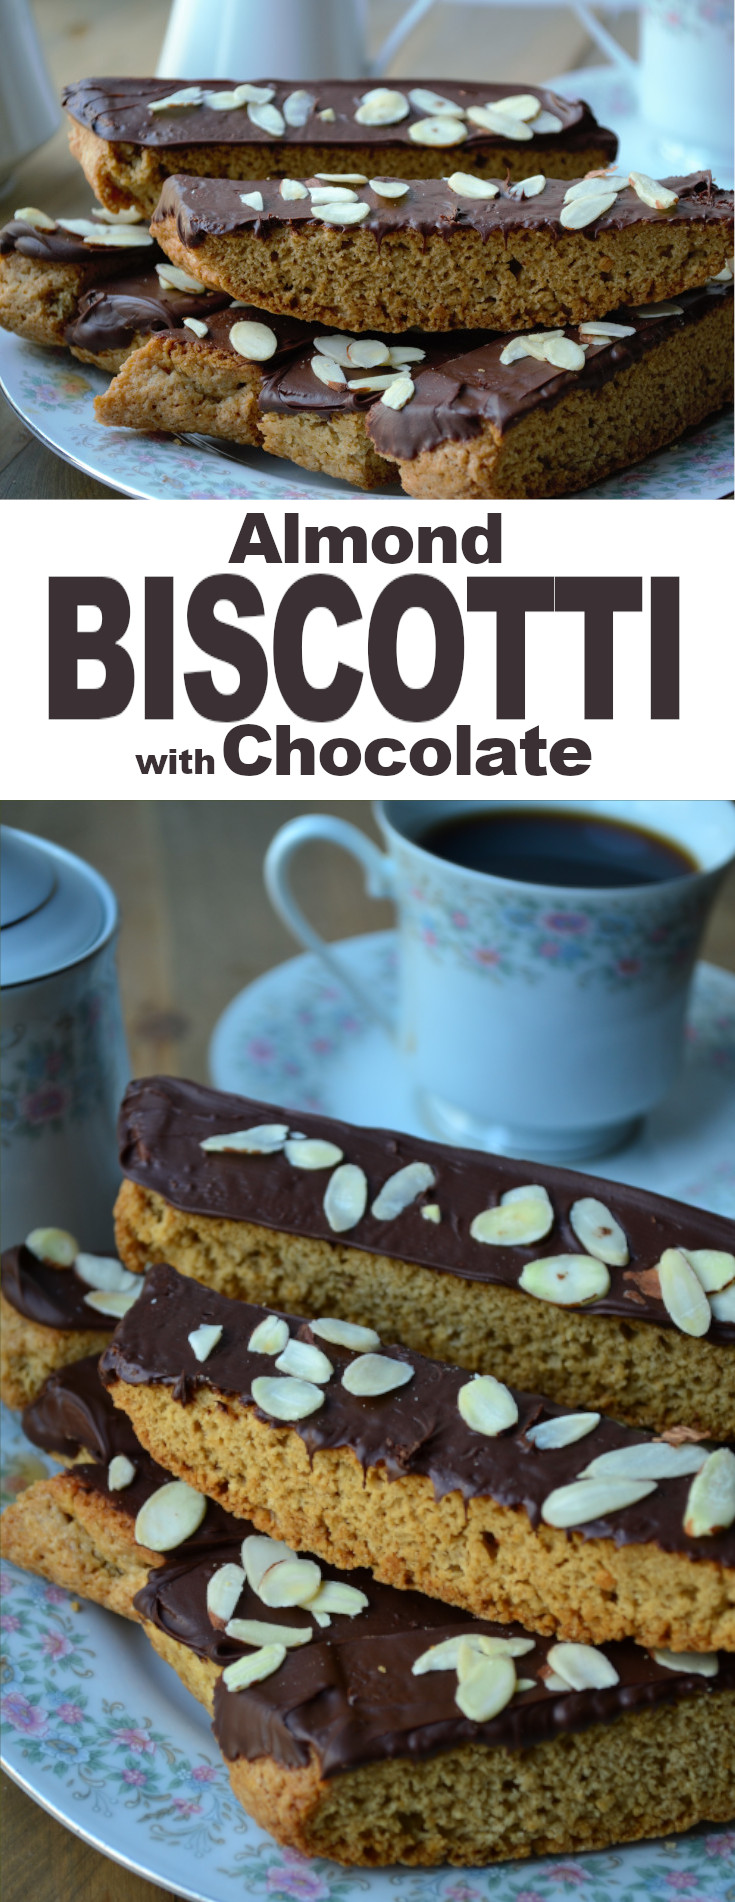 A simple Italian, almond flavored biscuit, that is slightly sweet, super crunchy and perfect for dipping in your favorite hot beverage.